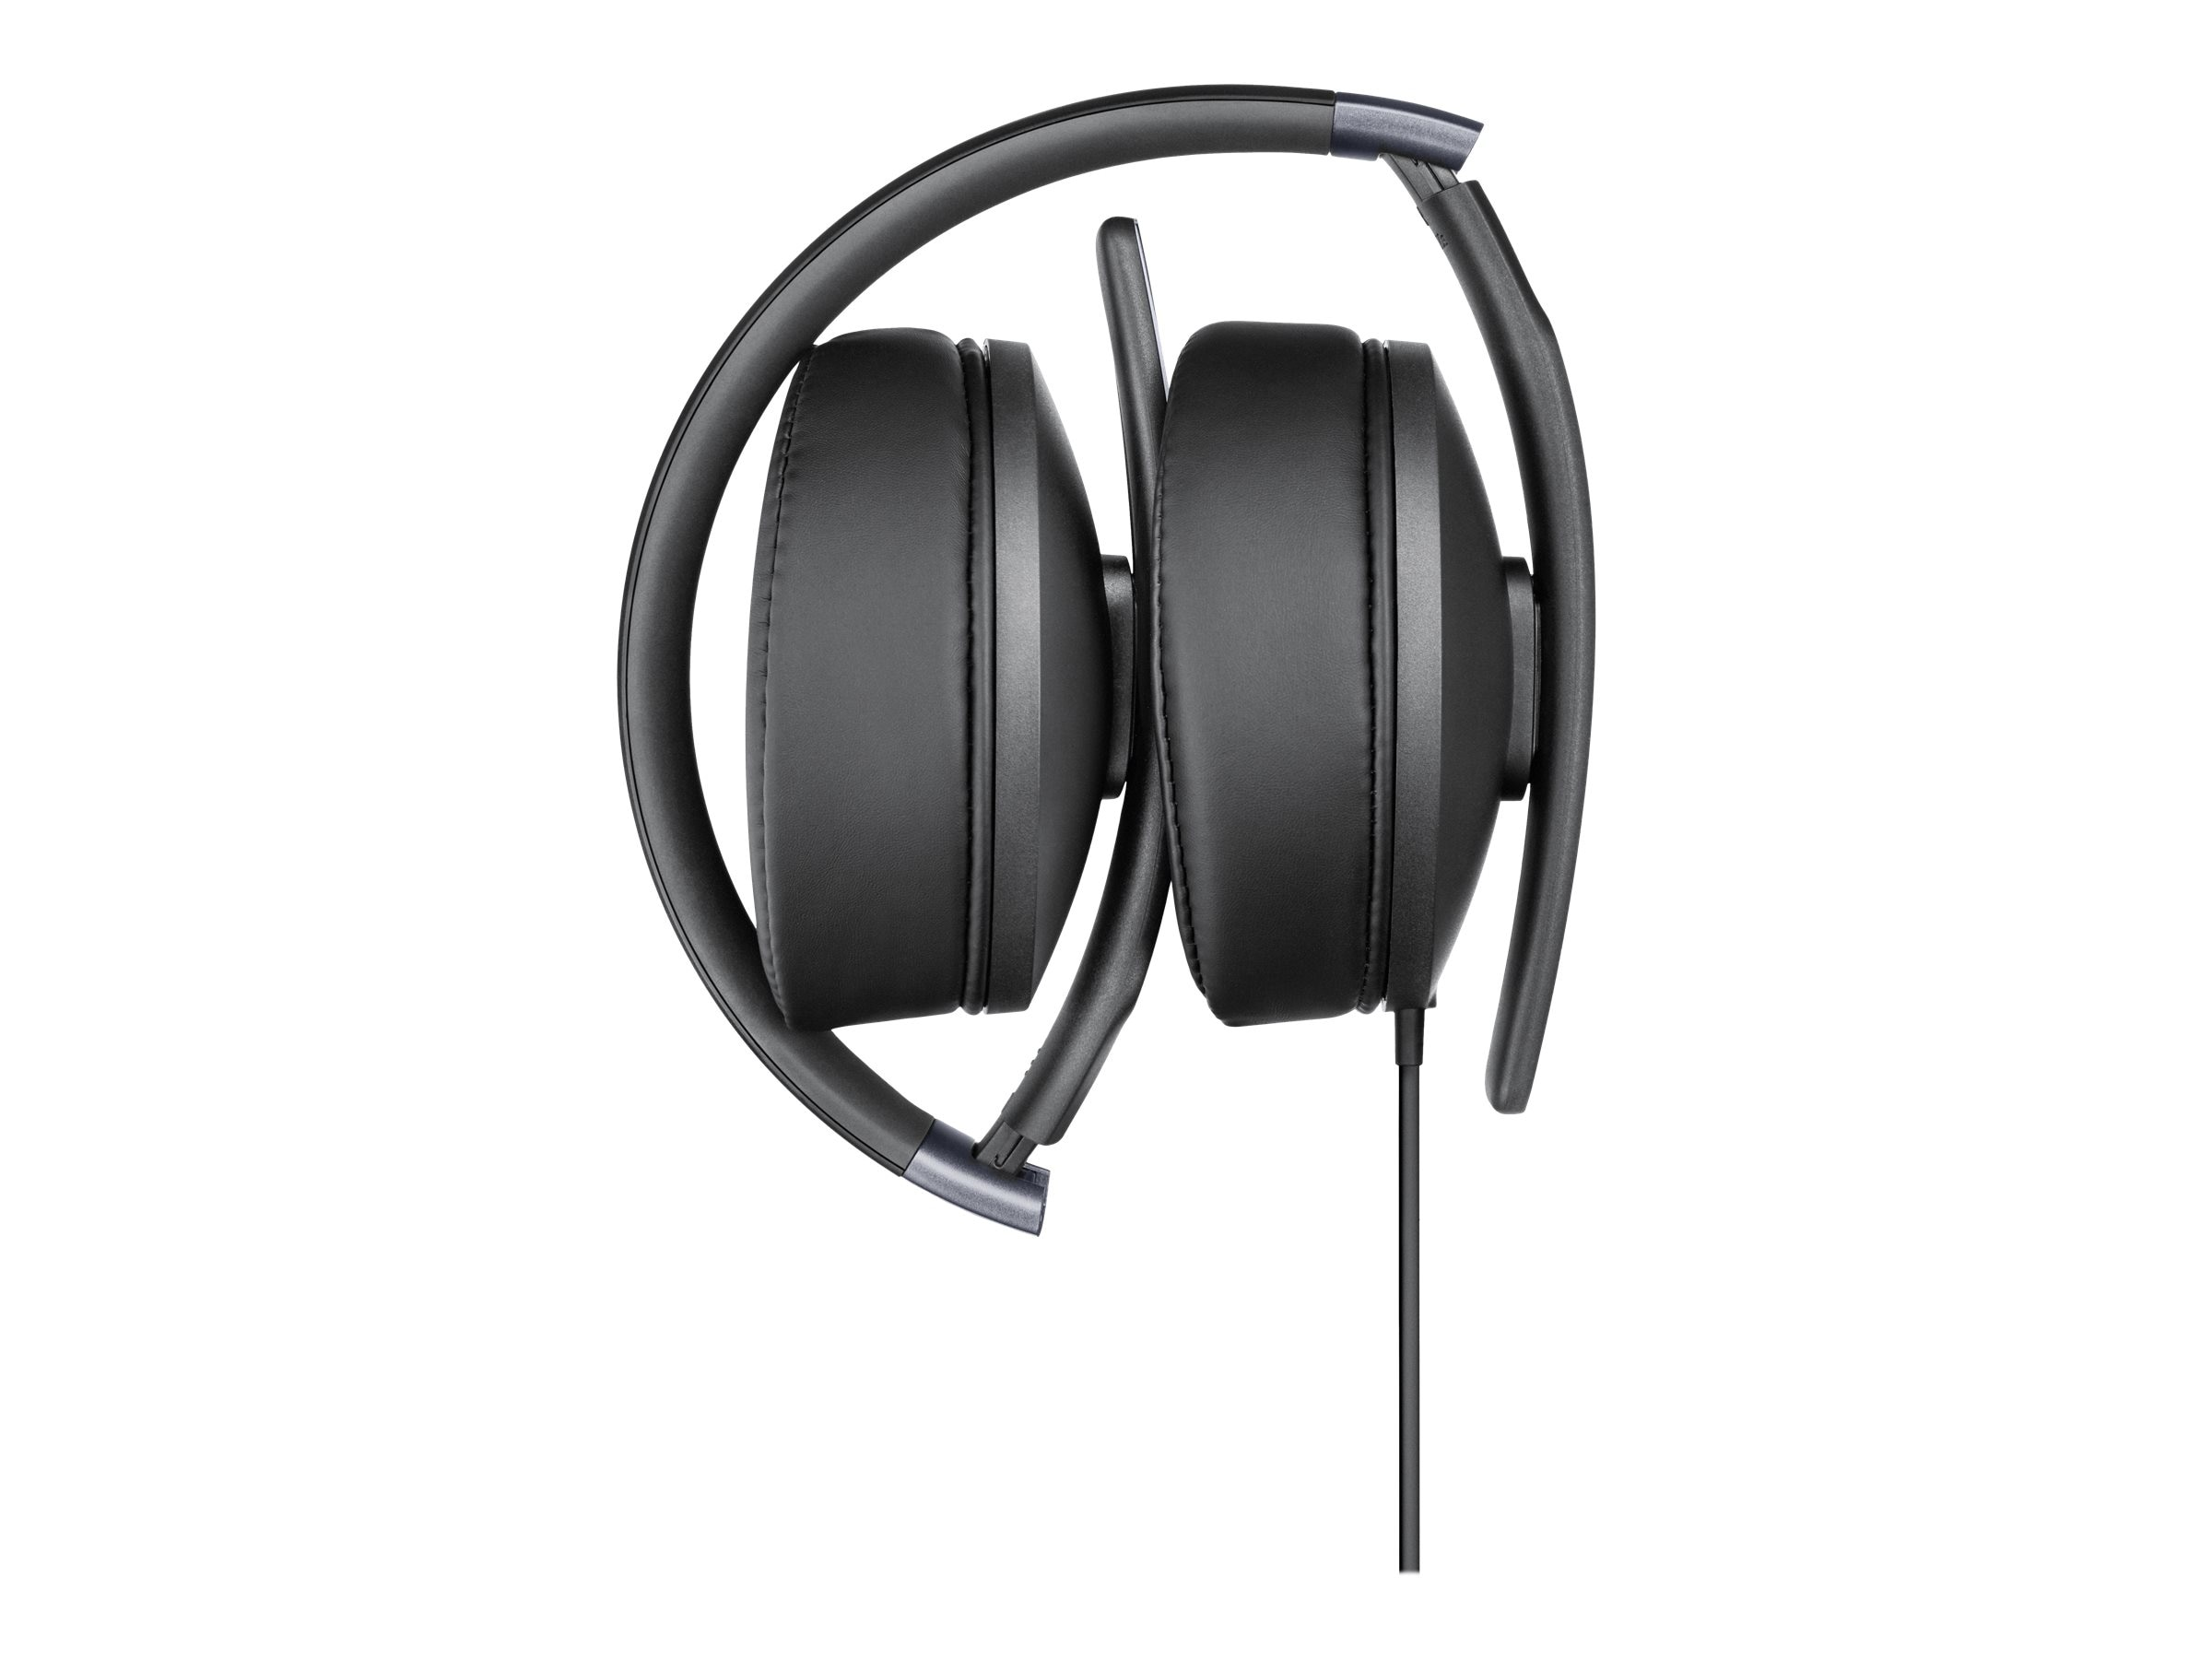 Sennheiser Closed Back On Ear Headphones, HD 4.20S